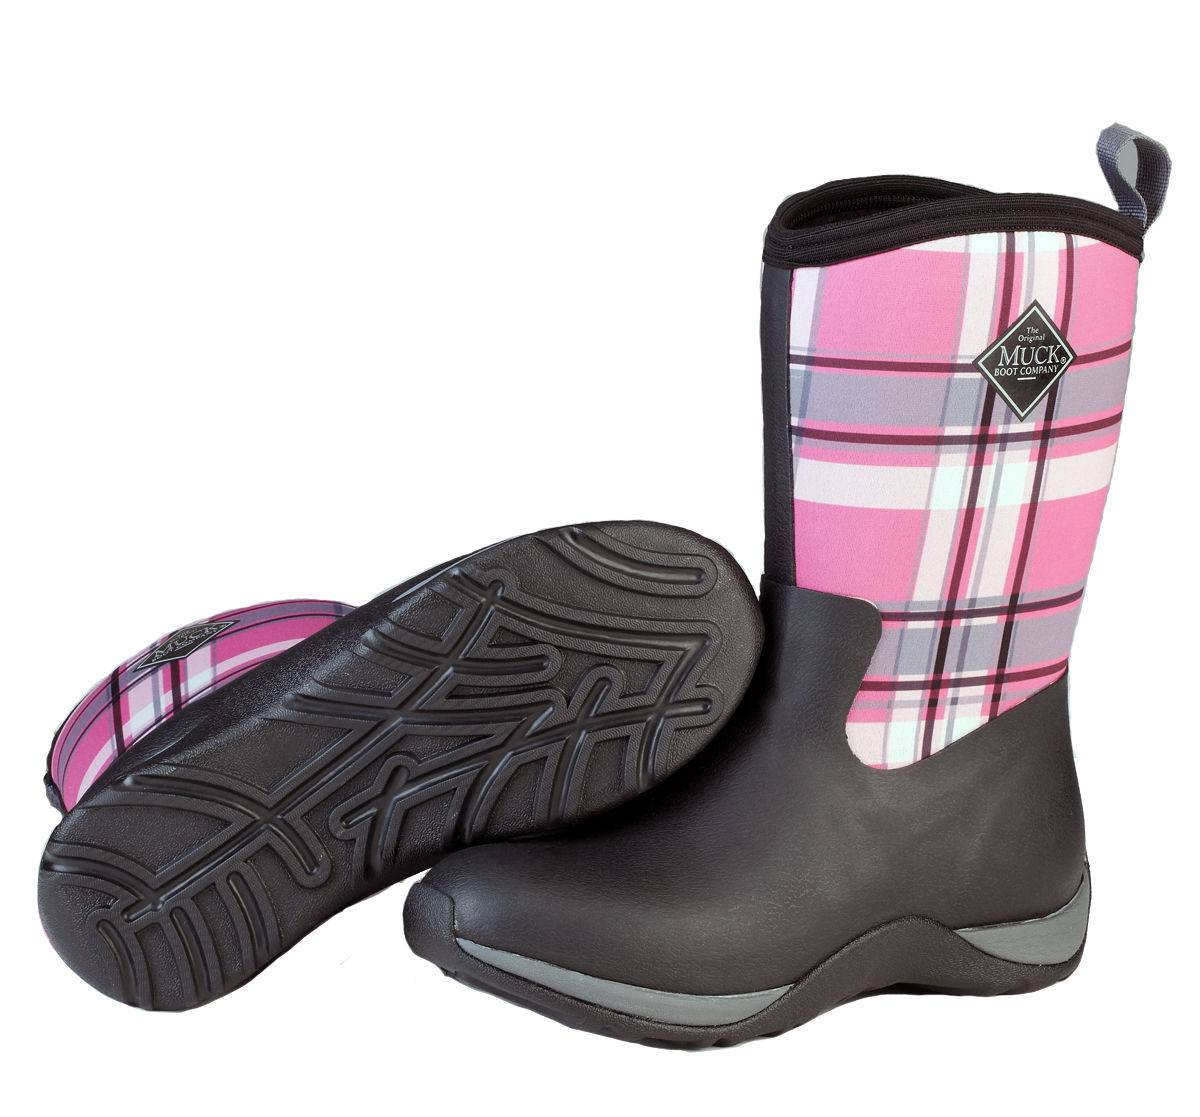 Muck Boots Women's Arctic Weekend - Black/Pink Plaid